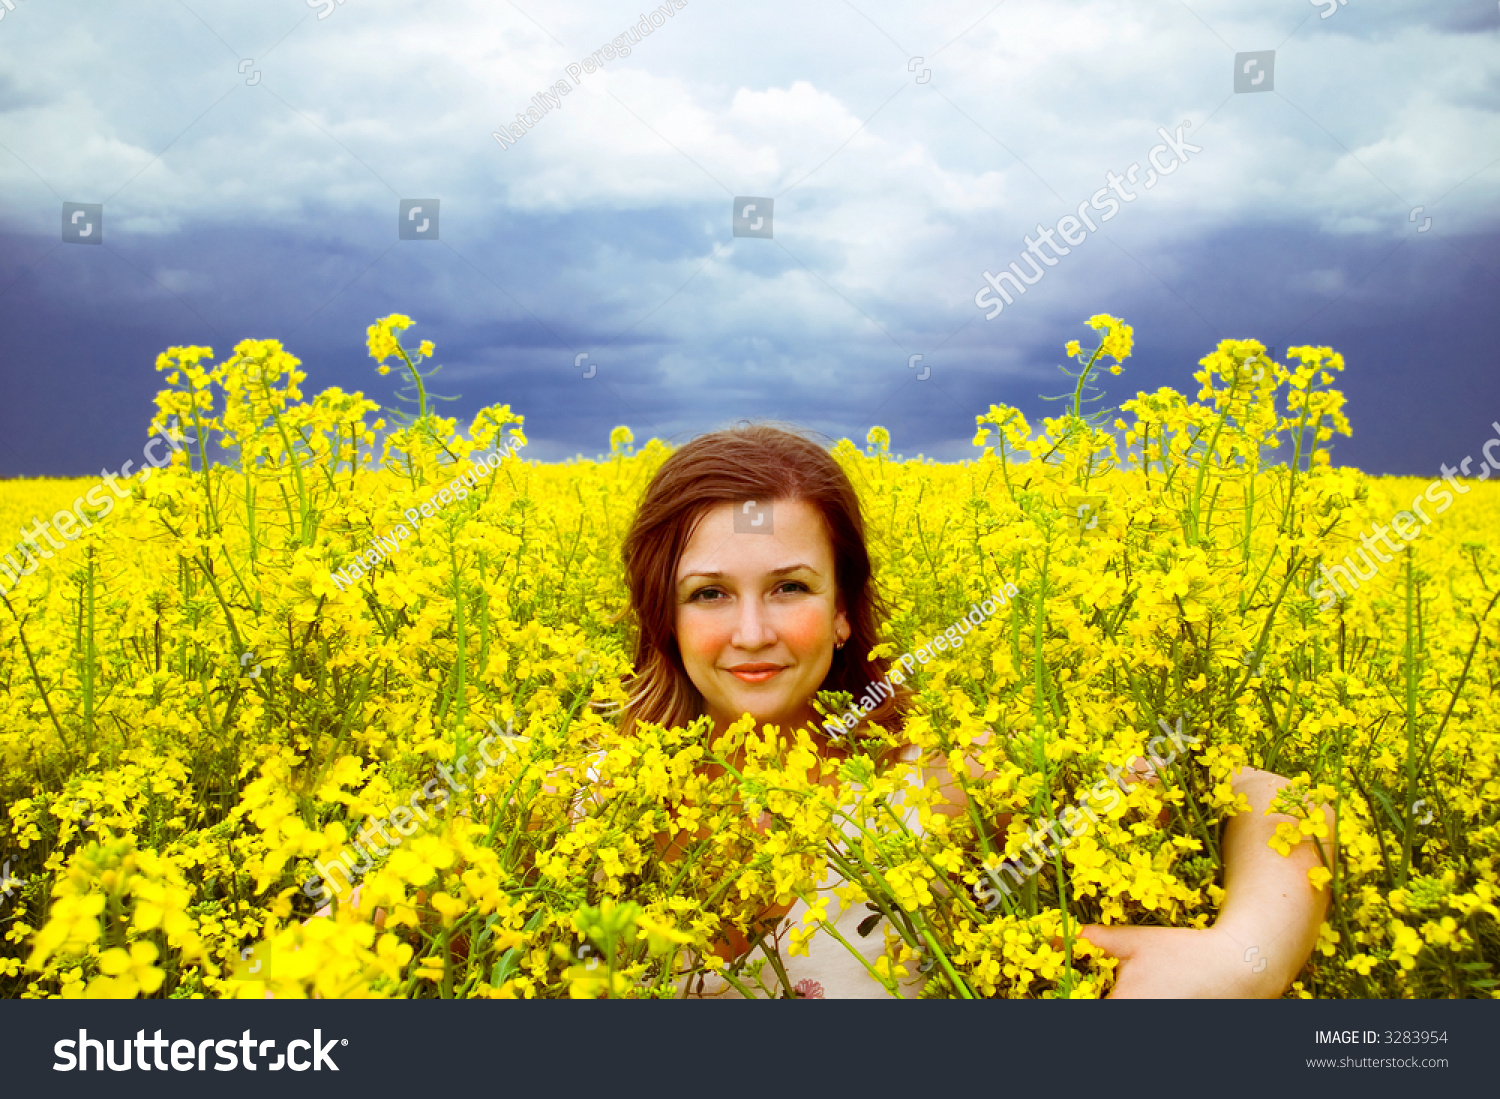 Girl In The Field Of Yellow Flowers Ez Canvas